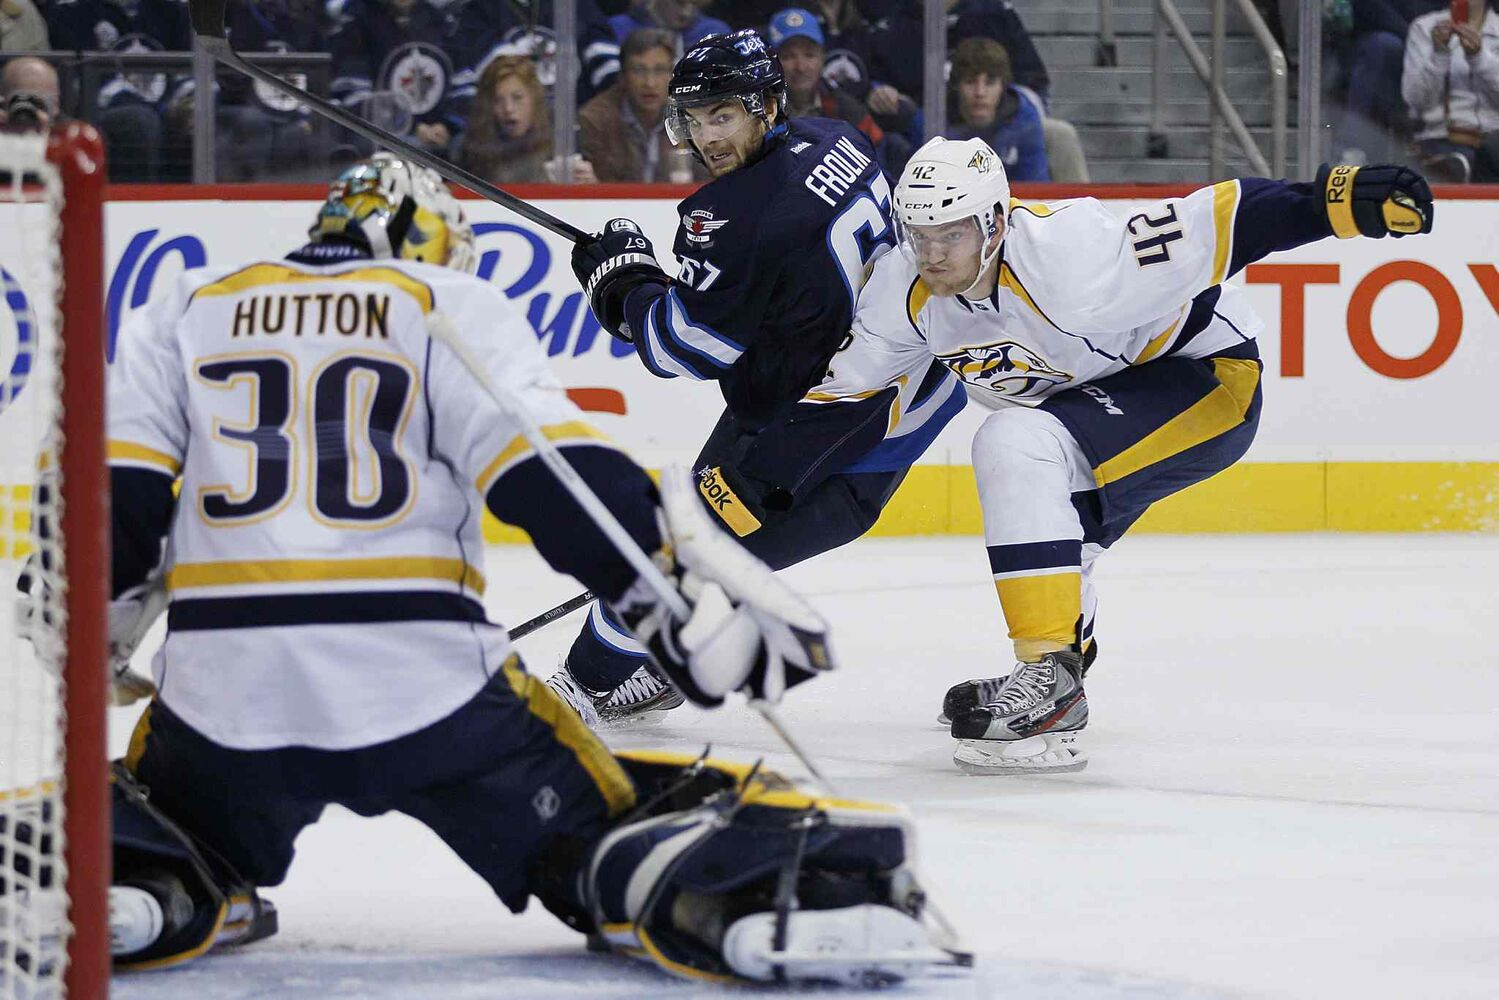 Michael Frolik (67) of the Winnipeg Jets and Nashville Predators' Mattias Ekholm (42) watch as Frolik's shot is saved by Predators goaltender Carter Hutton (30) during the second period.